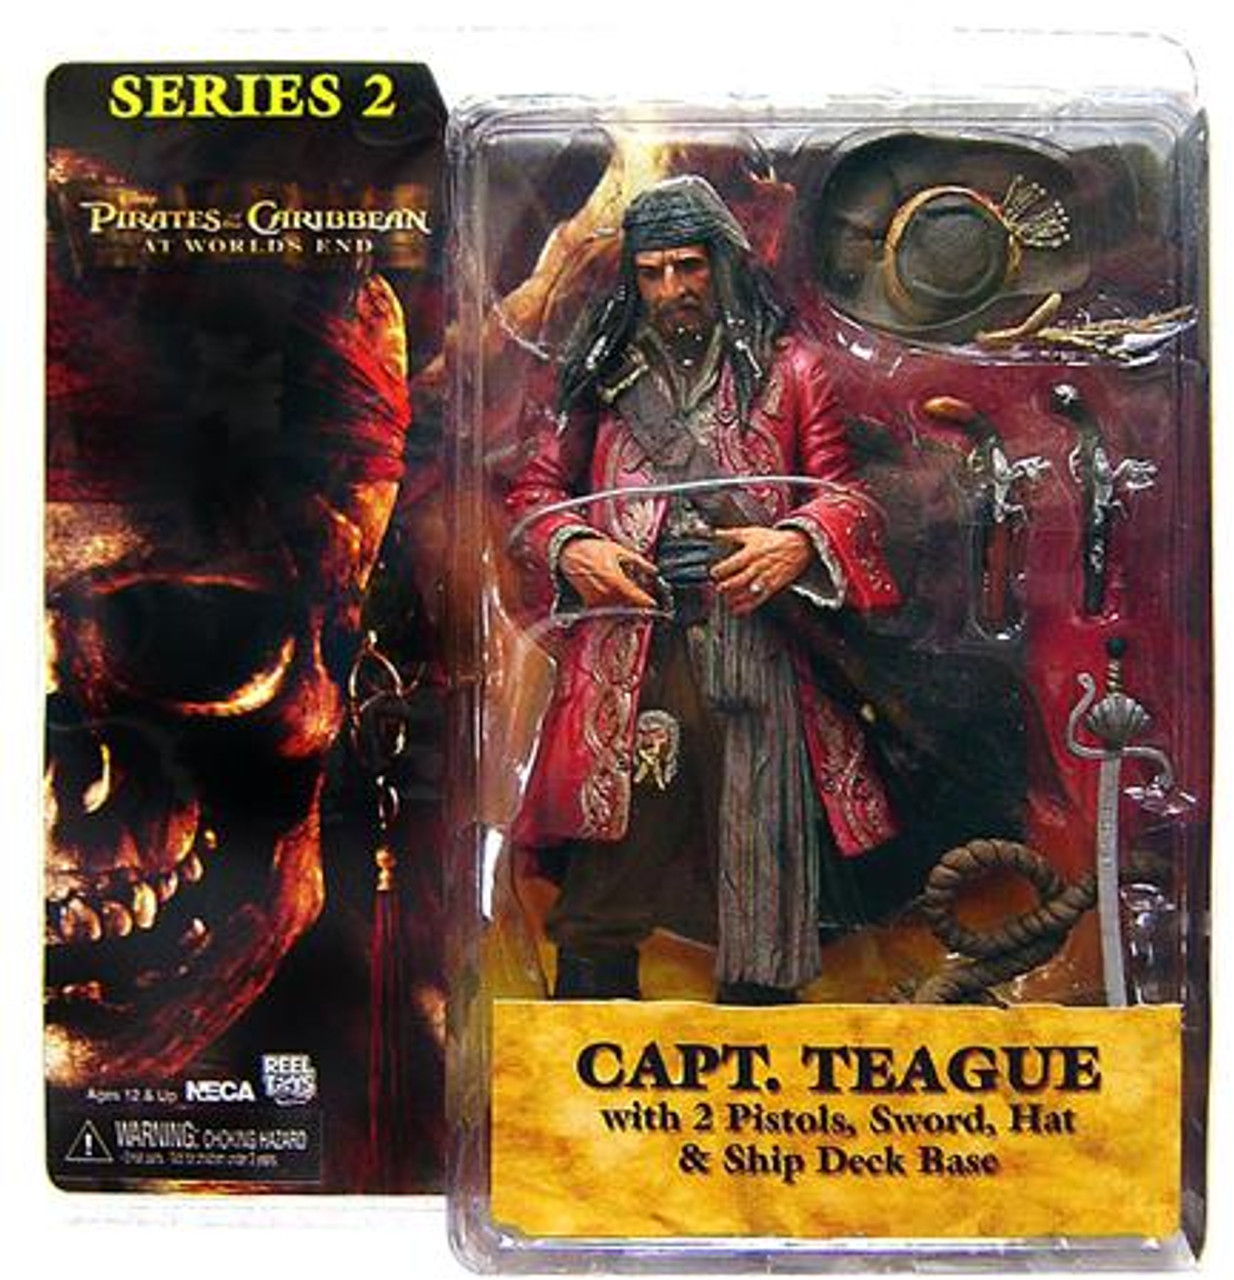 NECA Pirates of the Caribbean At World's End Series 2 Captain Teague Action Figure